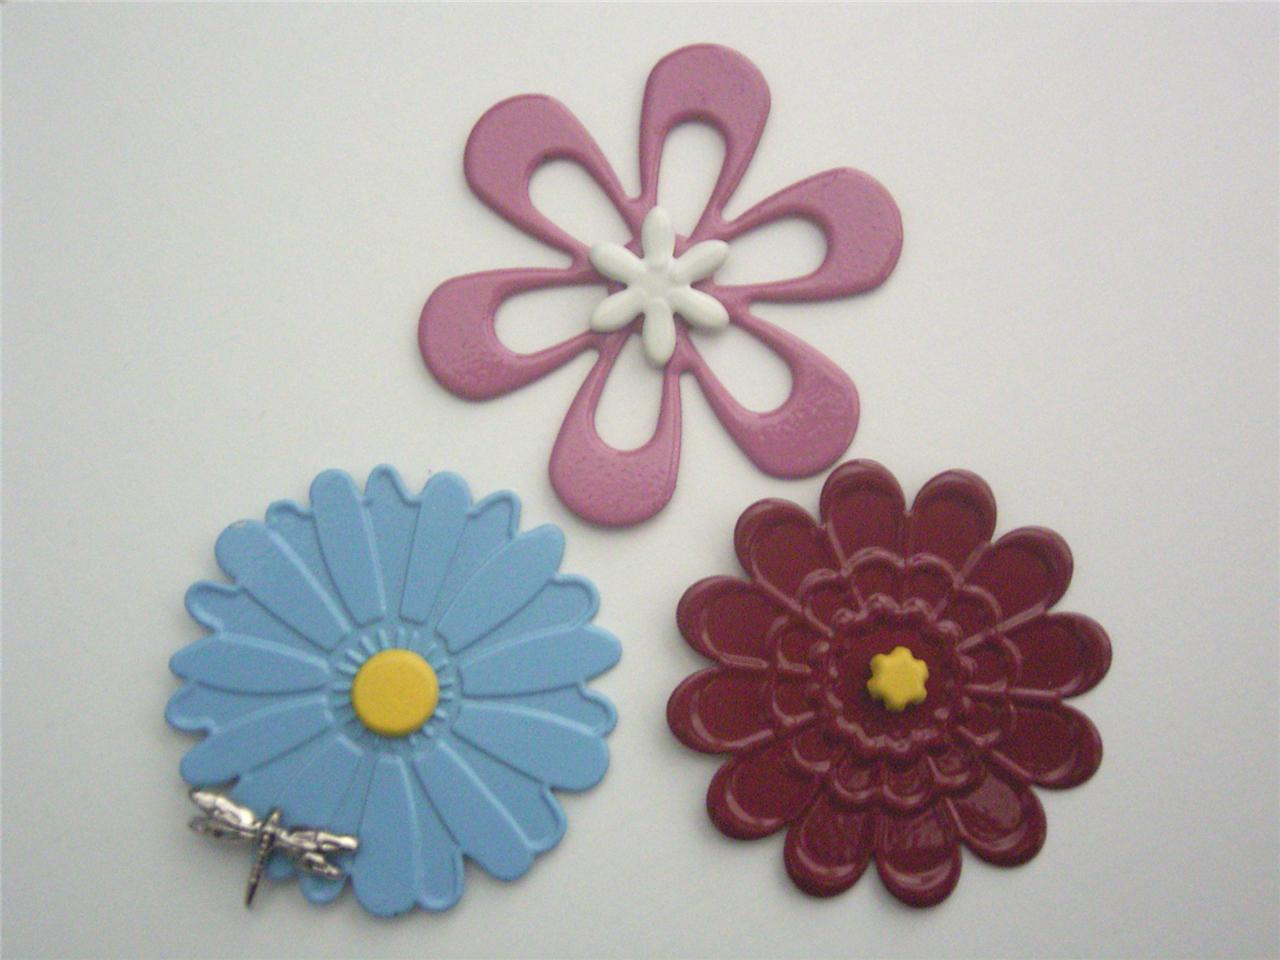 BRADS-CHARMS-FLOWERS-set-of-3-garden-daisy